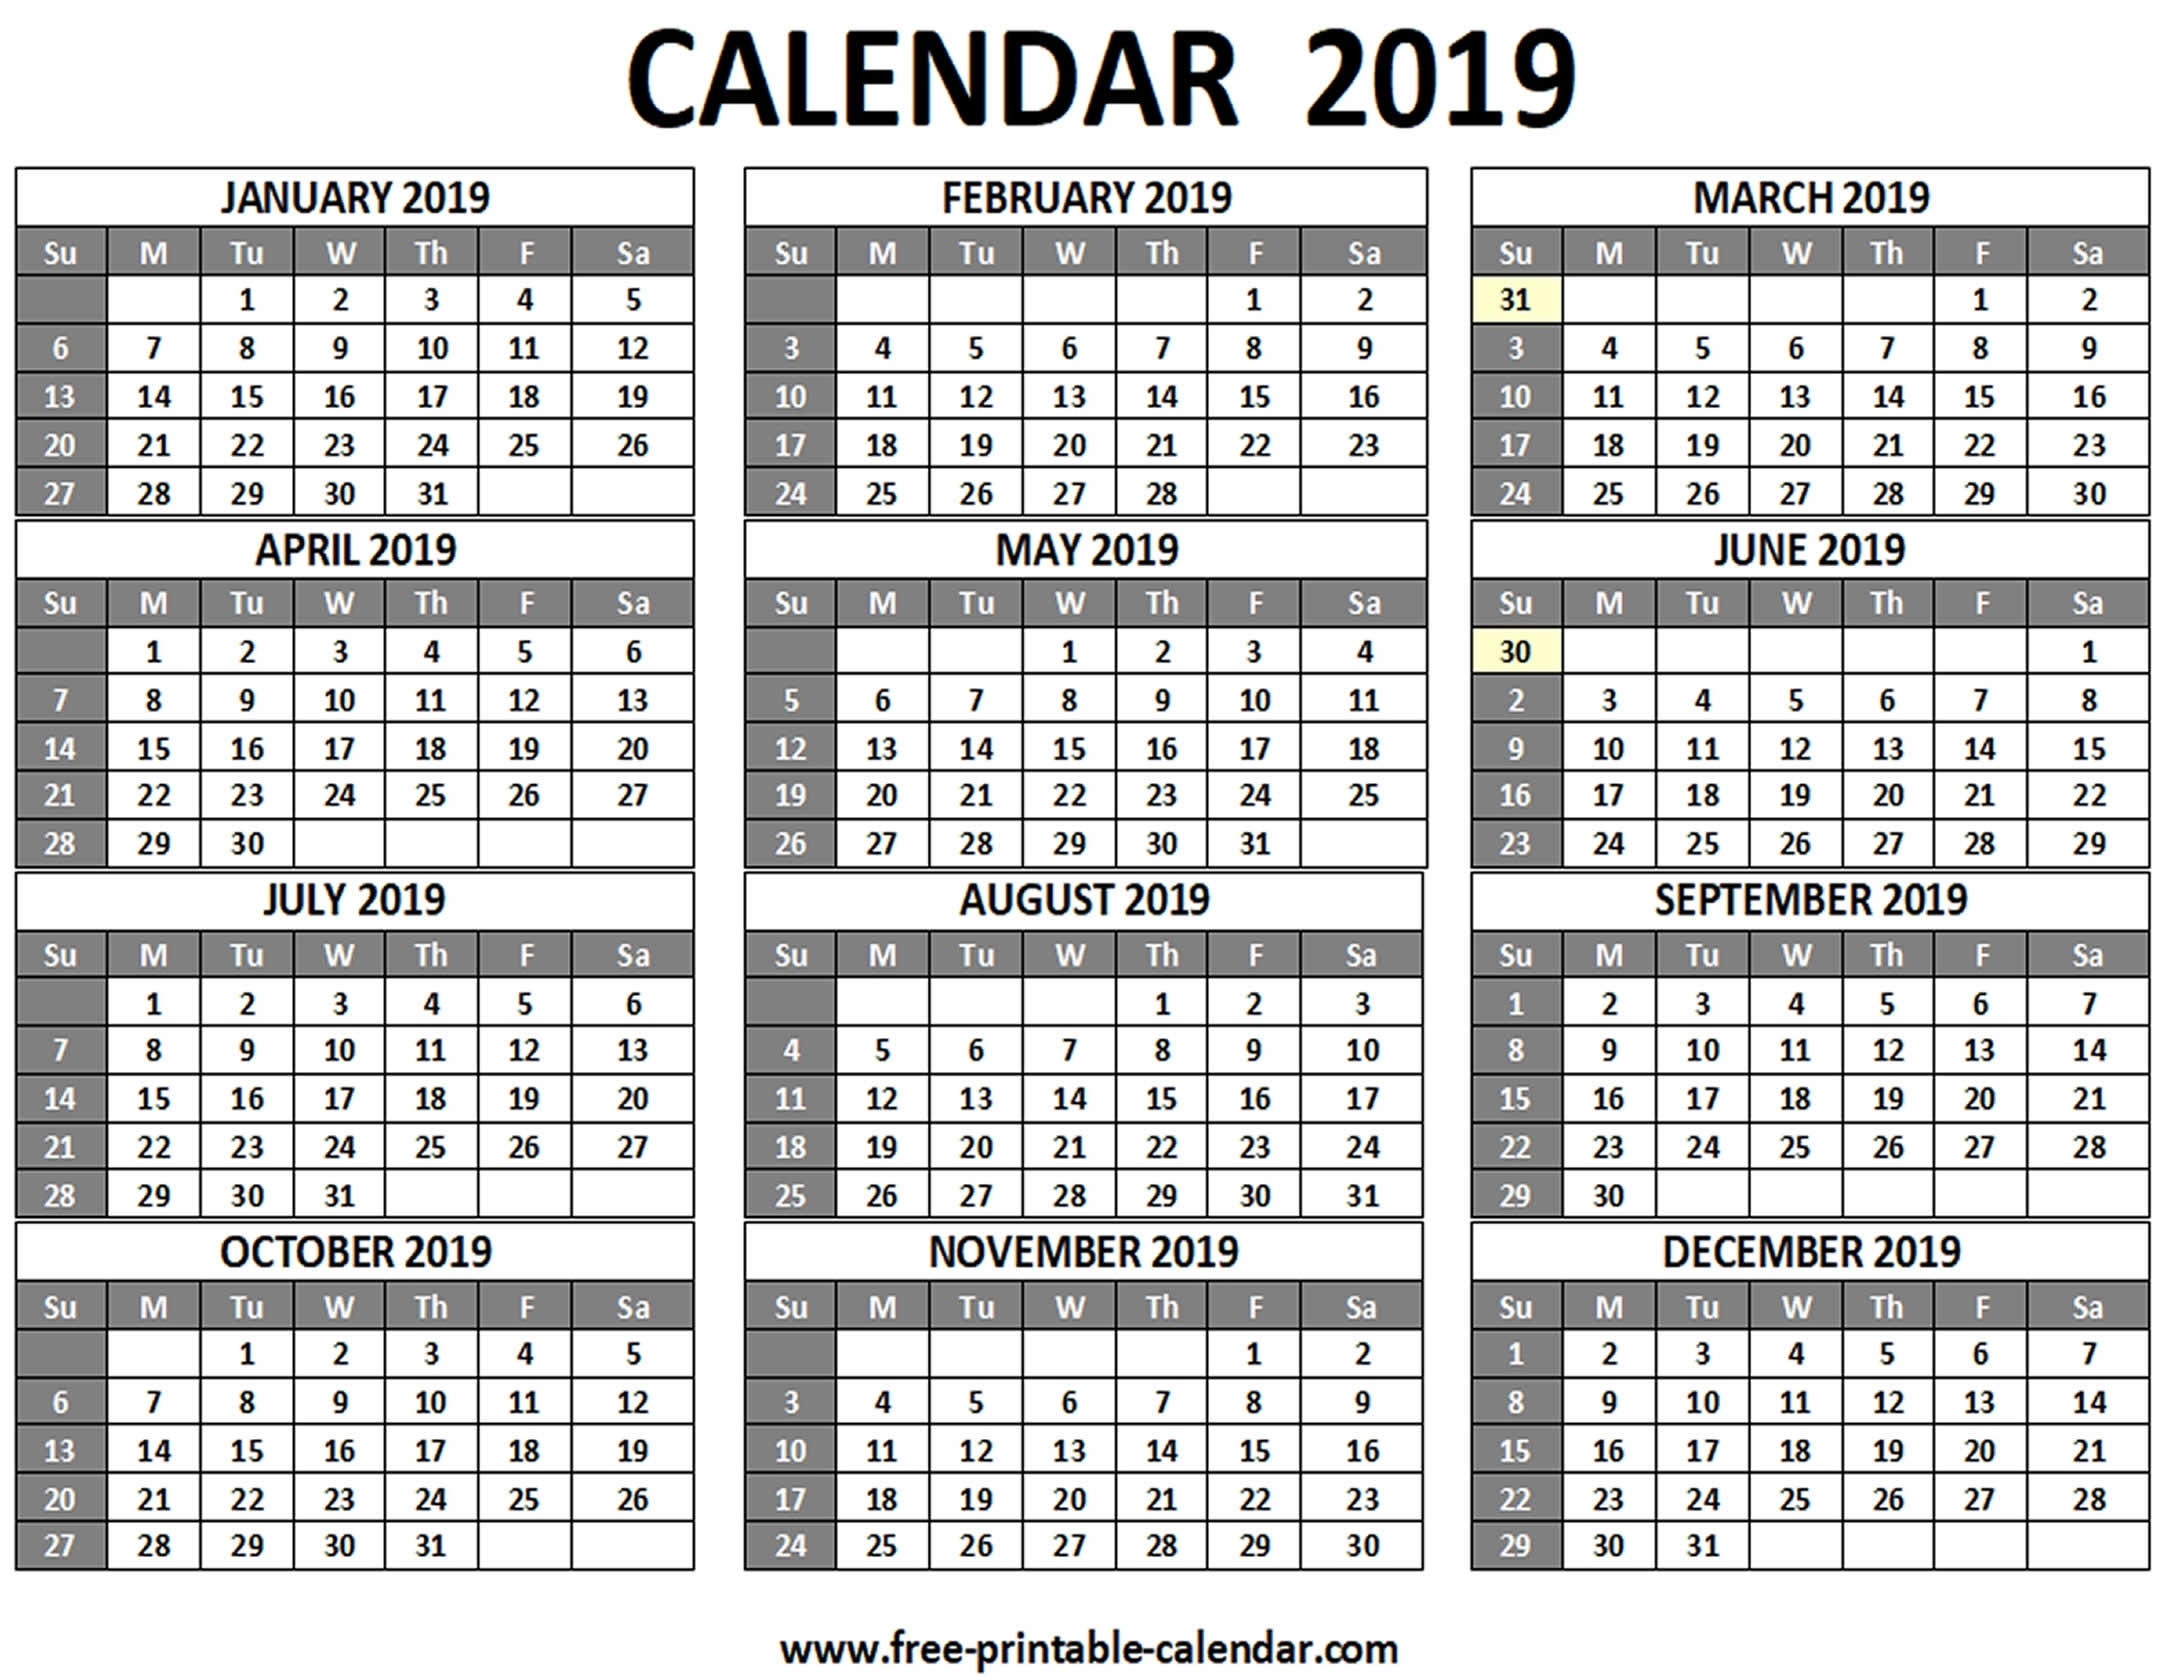 Printable 2019 Calendar - Free-Printable-Calendar Calendar Template Months On One Page Word